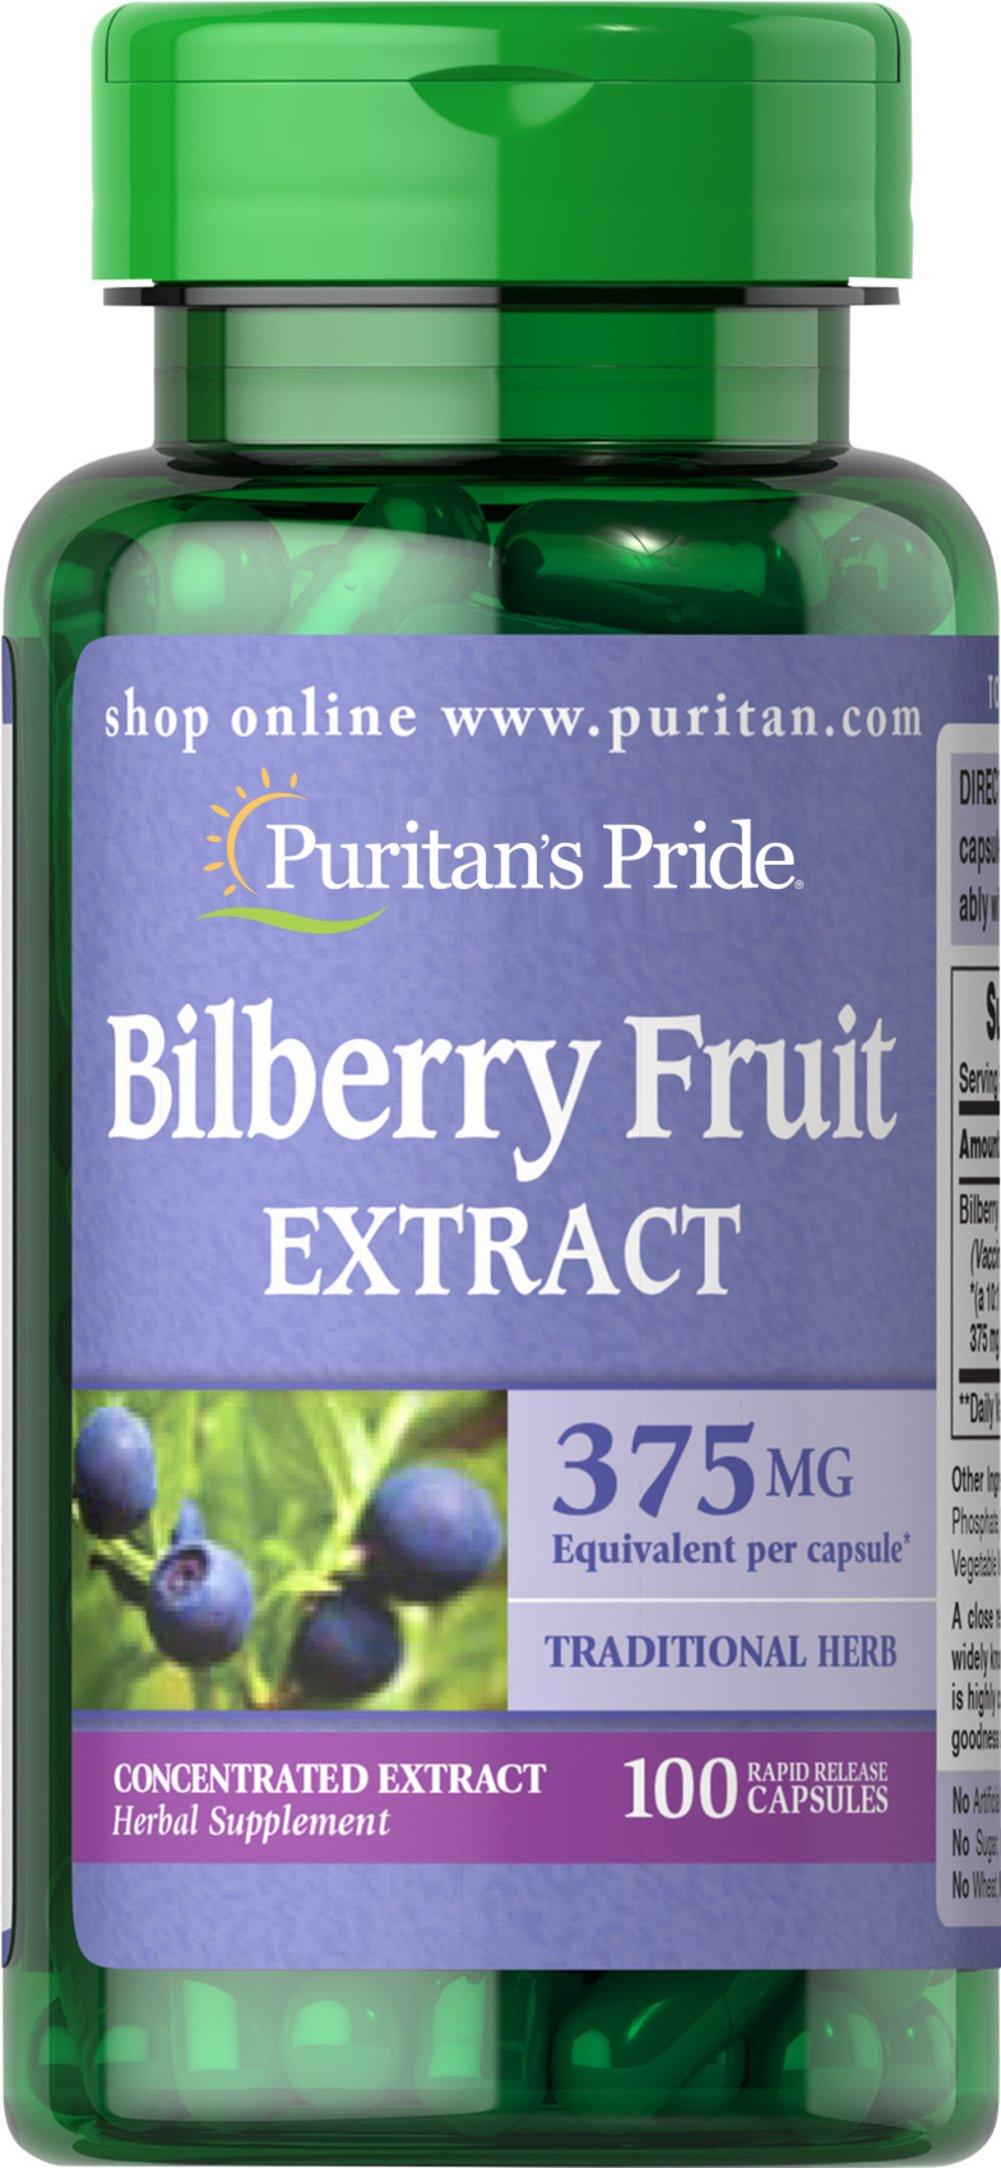 Bilberry 10:1 Extract 375 mg  100 Capsules 375 mg $8.24